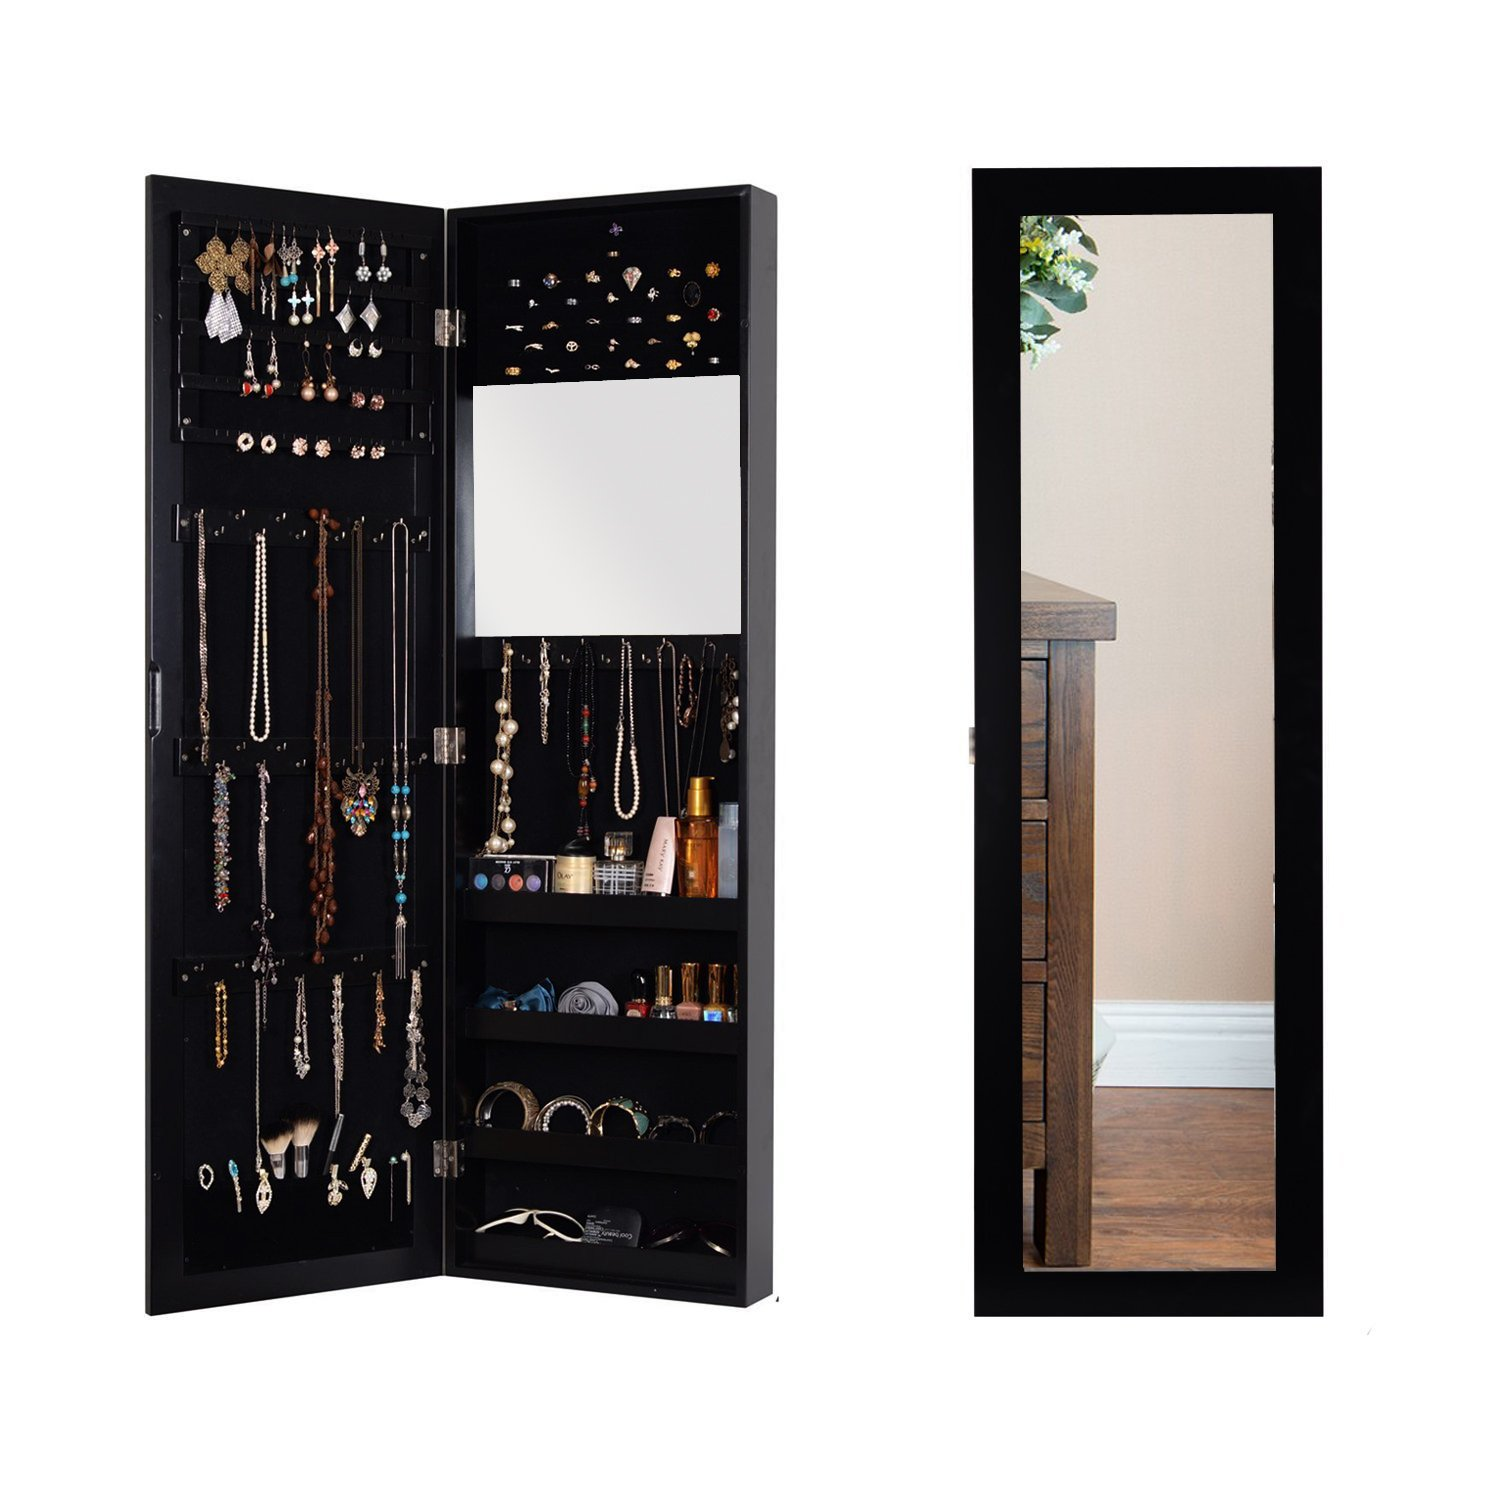 Organizedlife Black Wall Mounted Jewelry Armoire Cabinet with Mirror Furniture